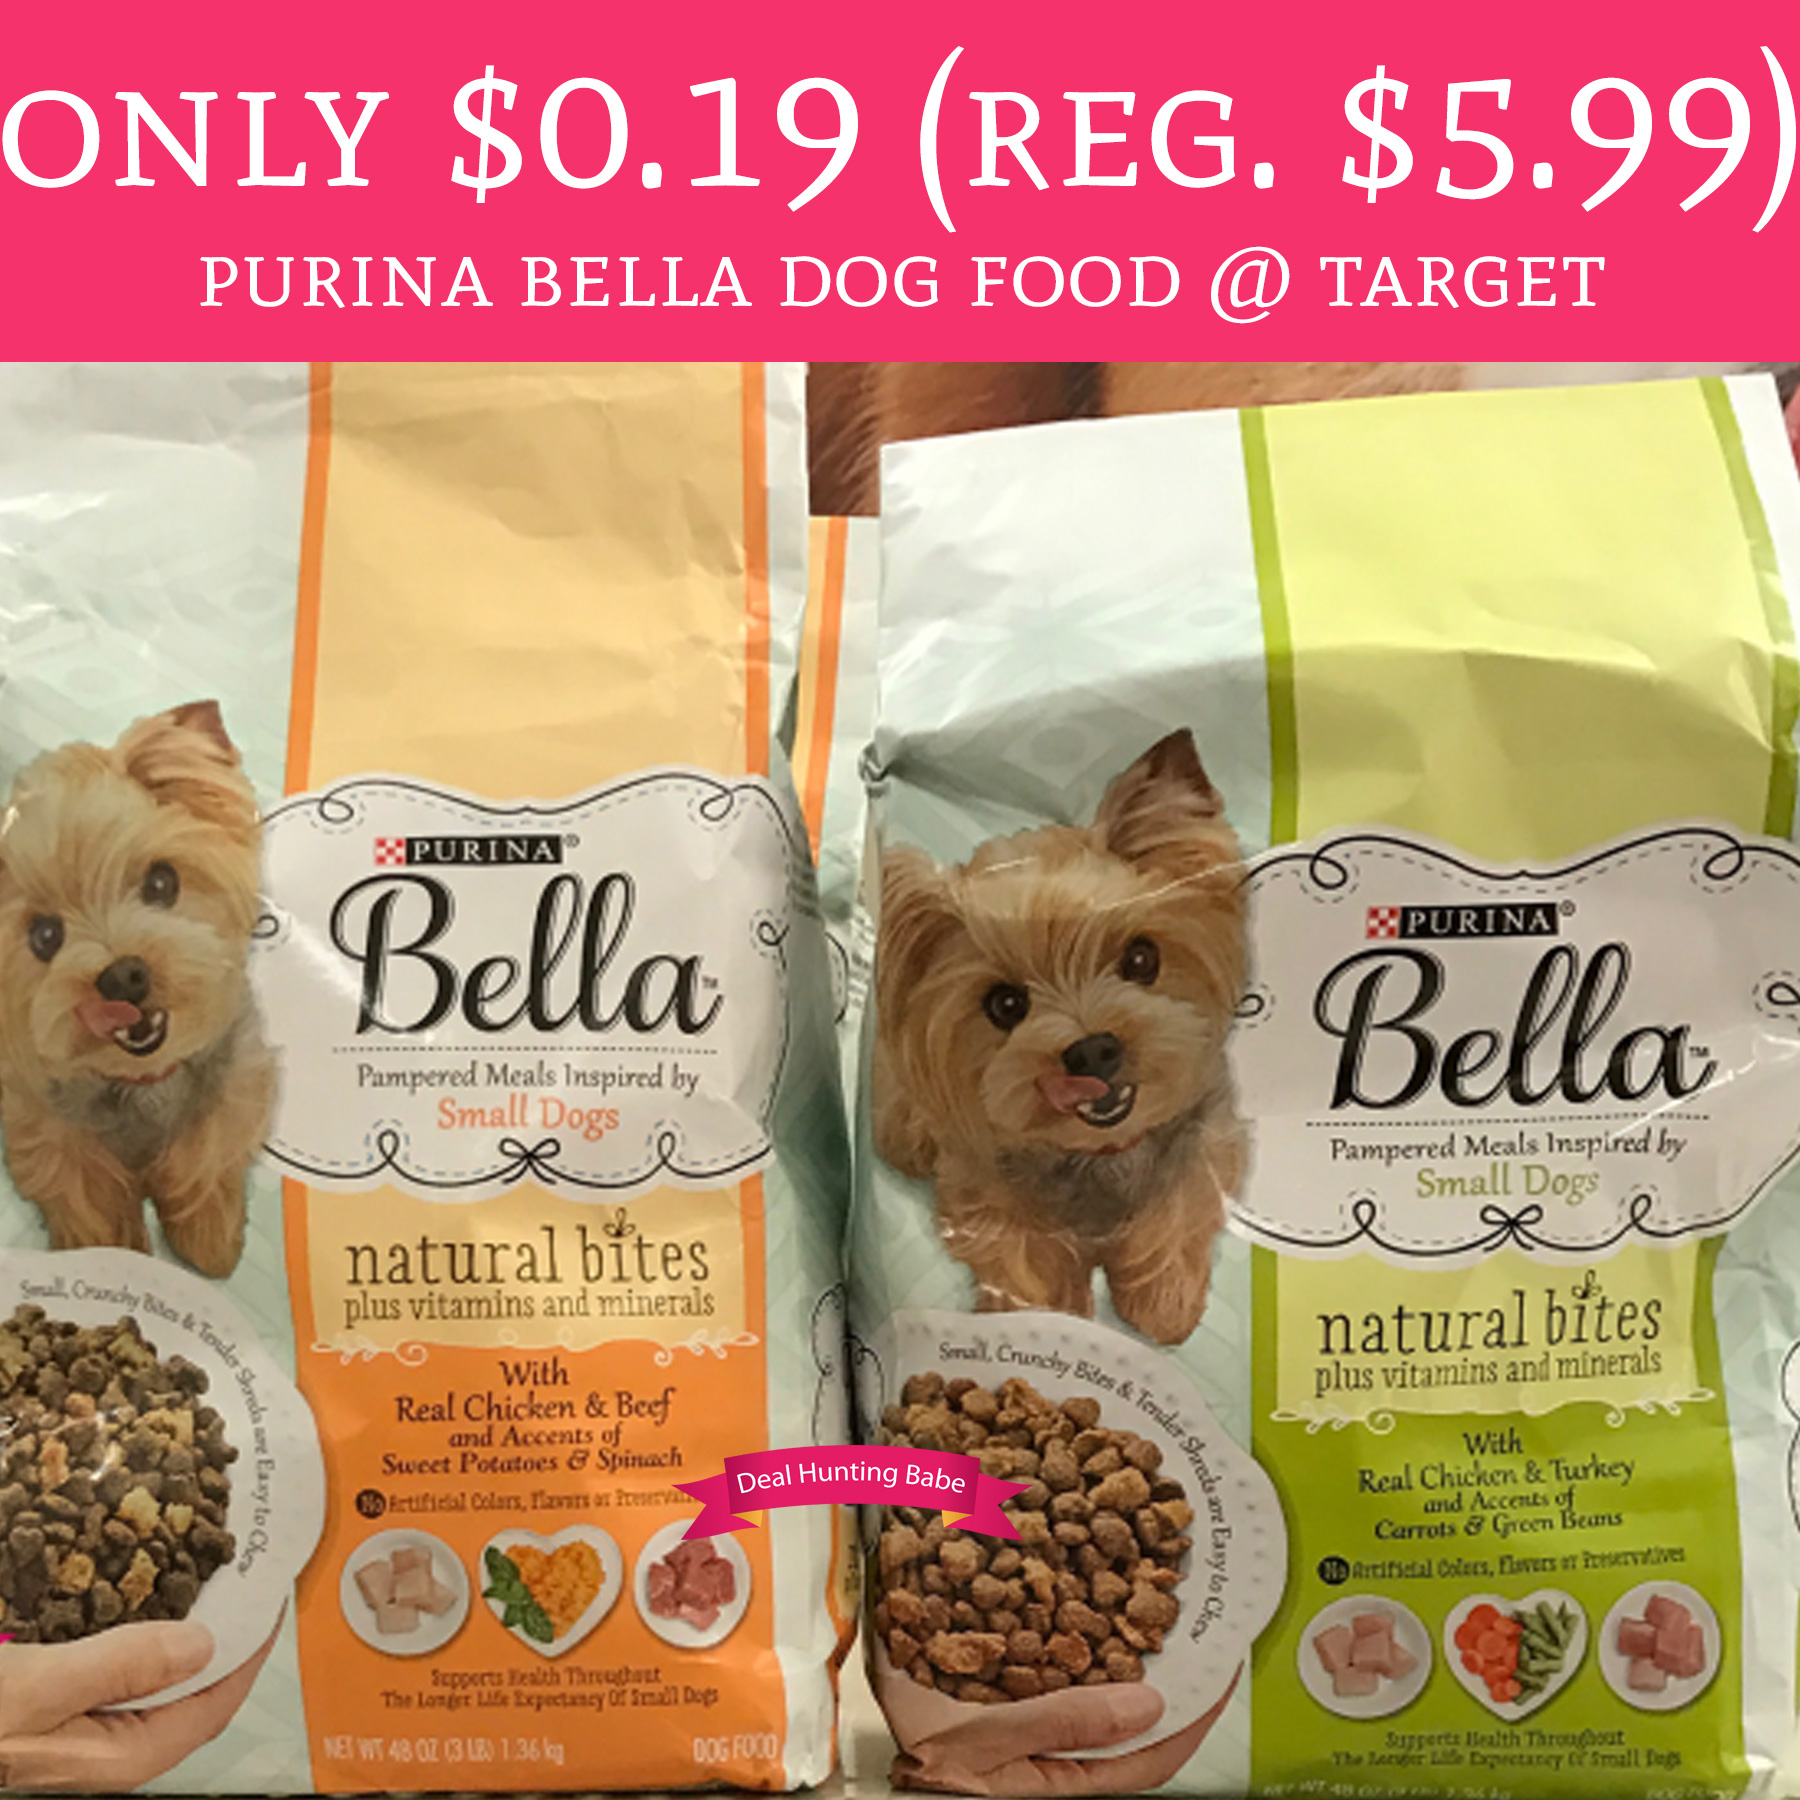 5/14 Only - $0.19 (Regular $5.99) Purina Bella Dog Food ...